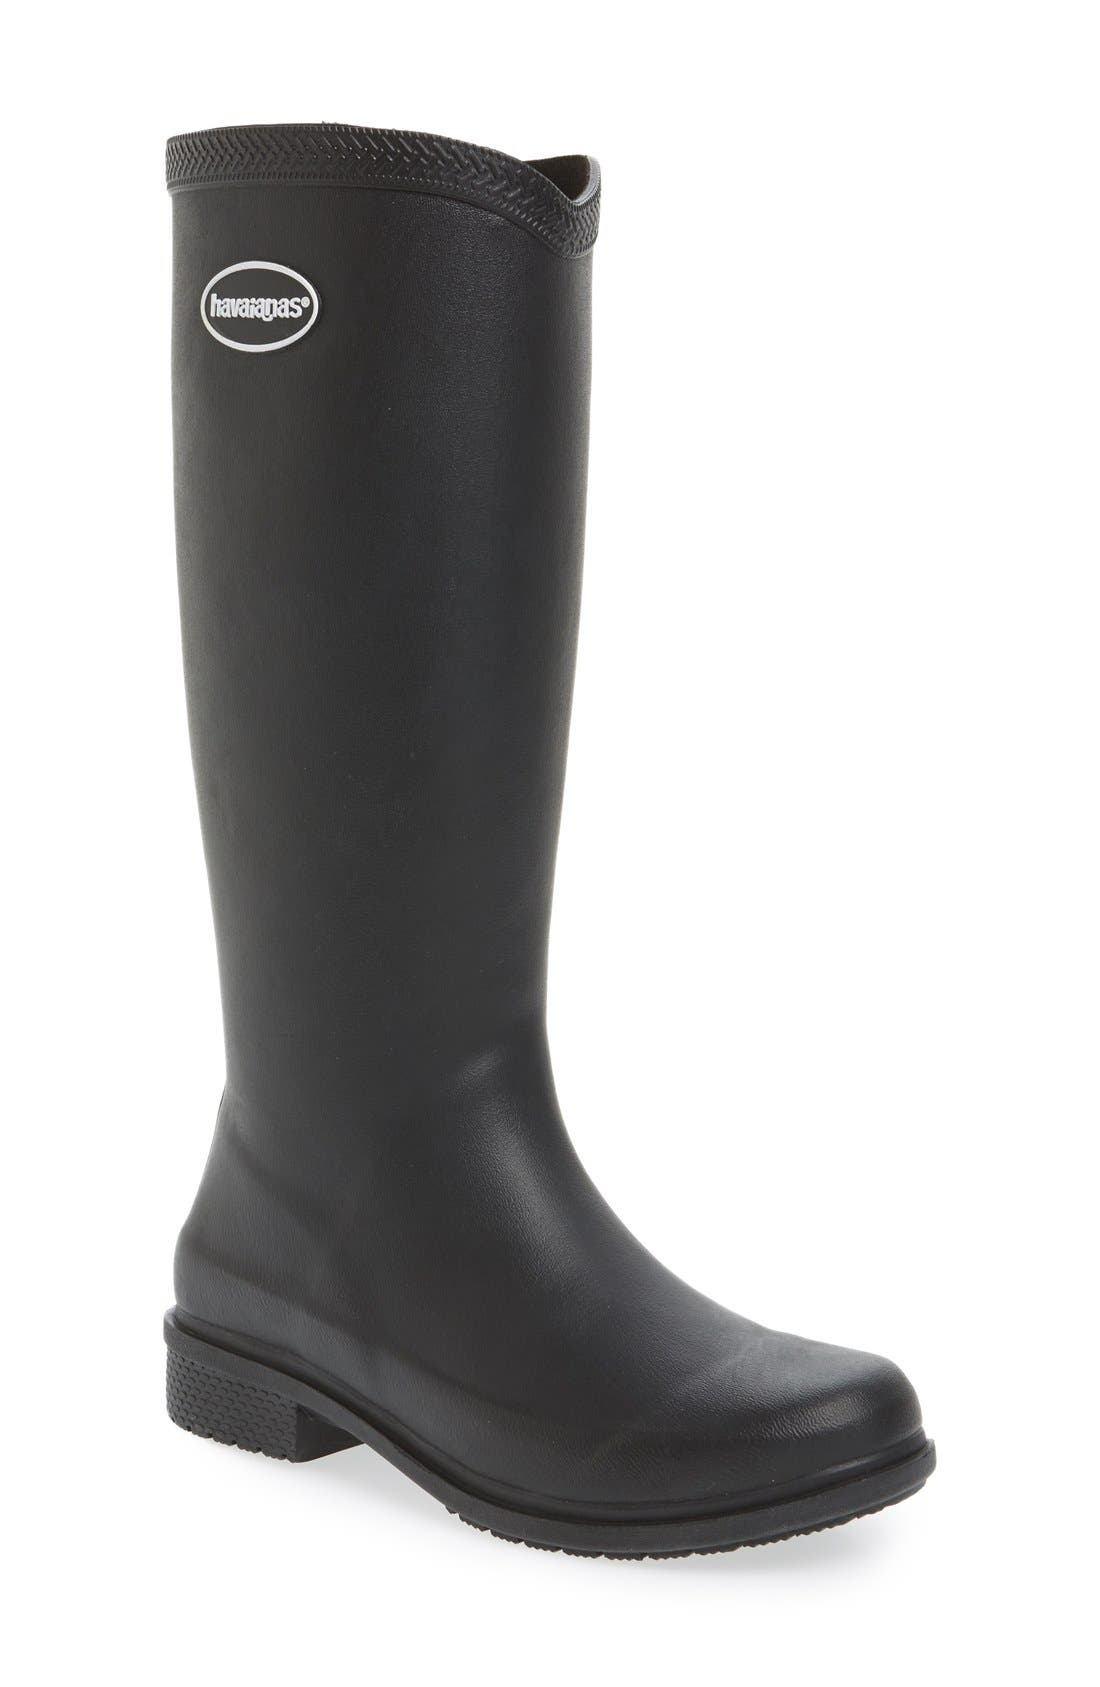 Havaianas 'Galochas Hi Matte' Waterproof Rain Boot (Women) (Wide Calf)